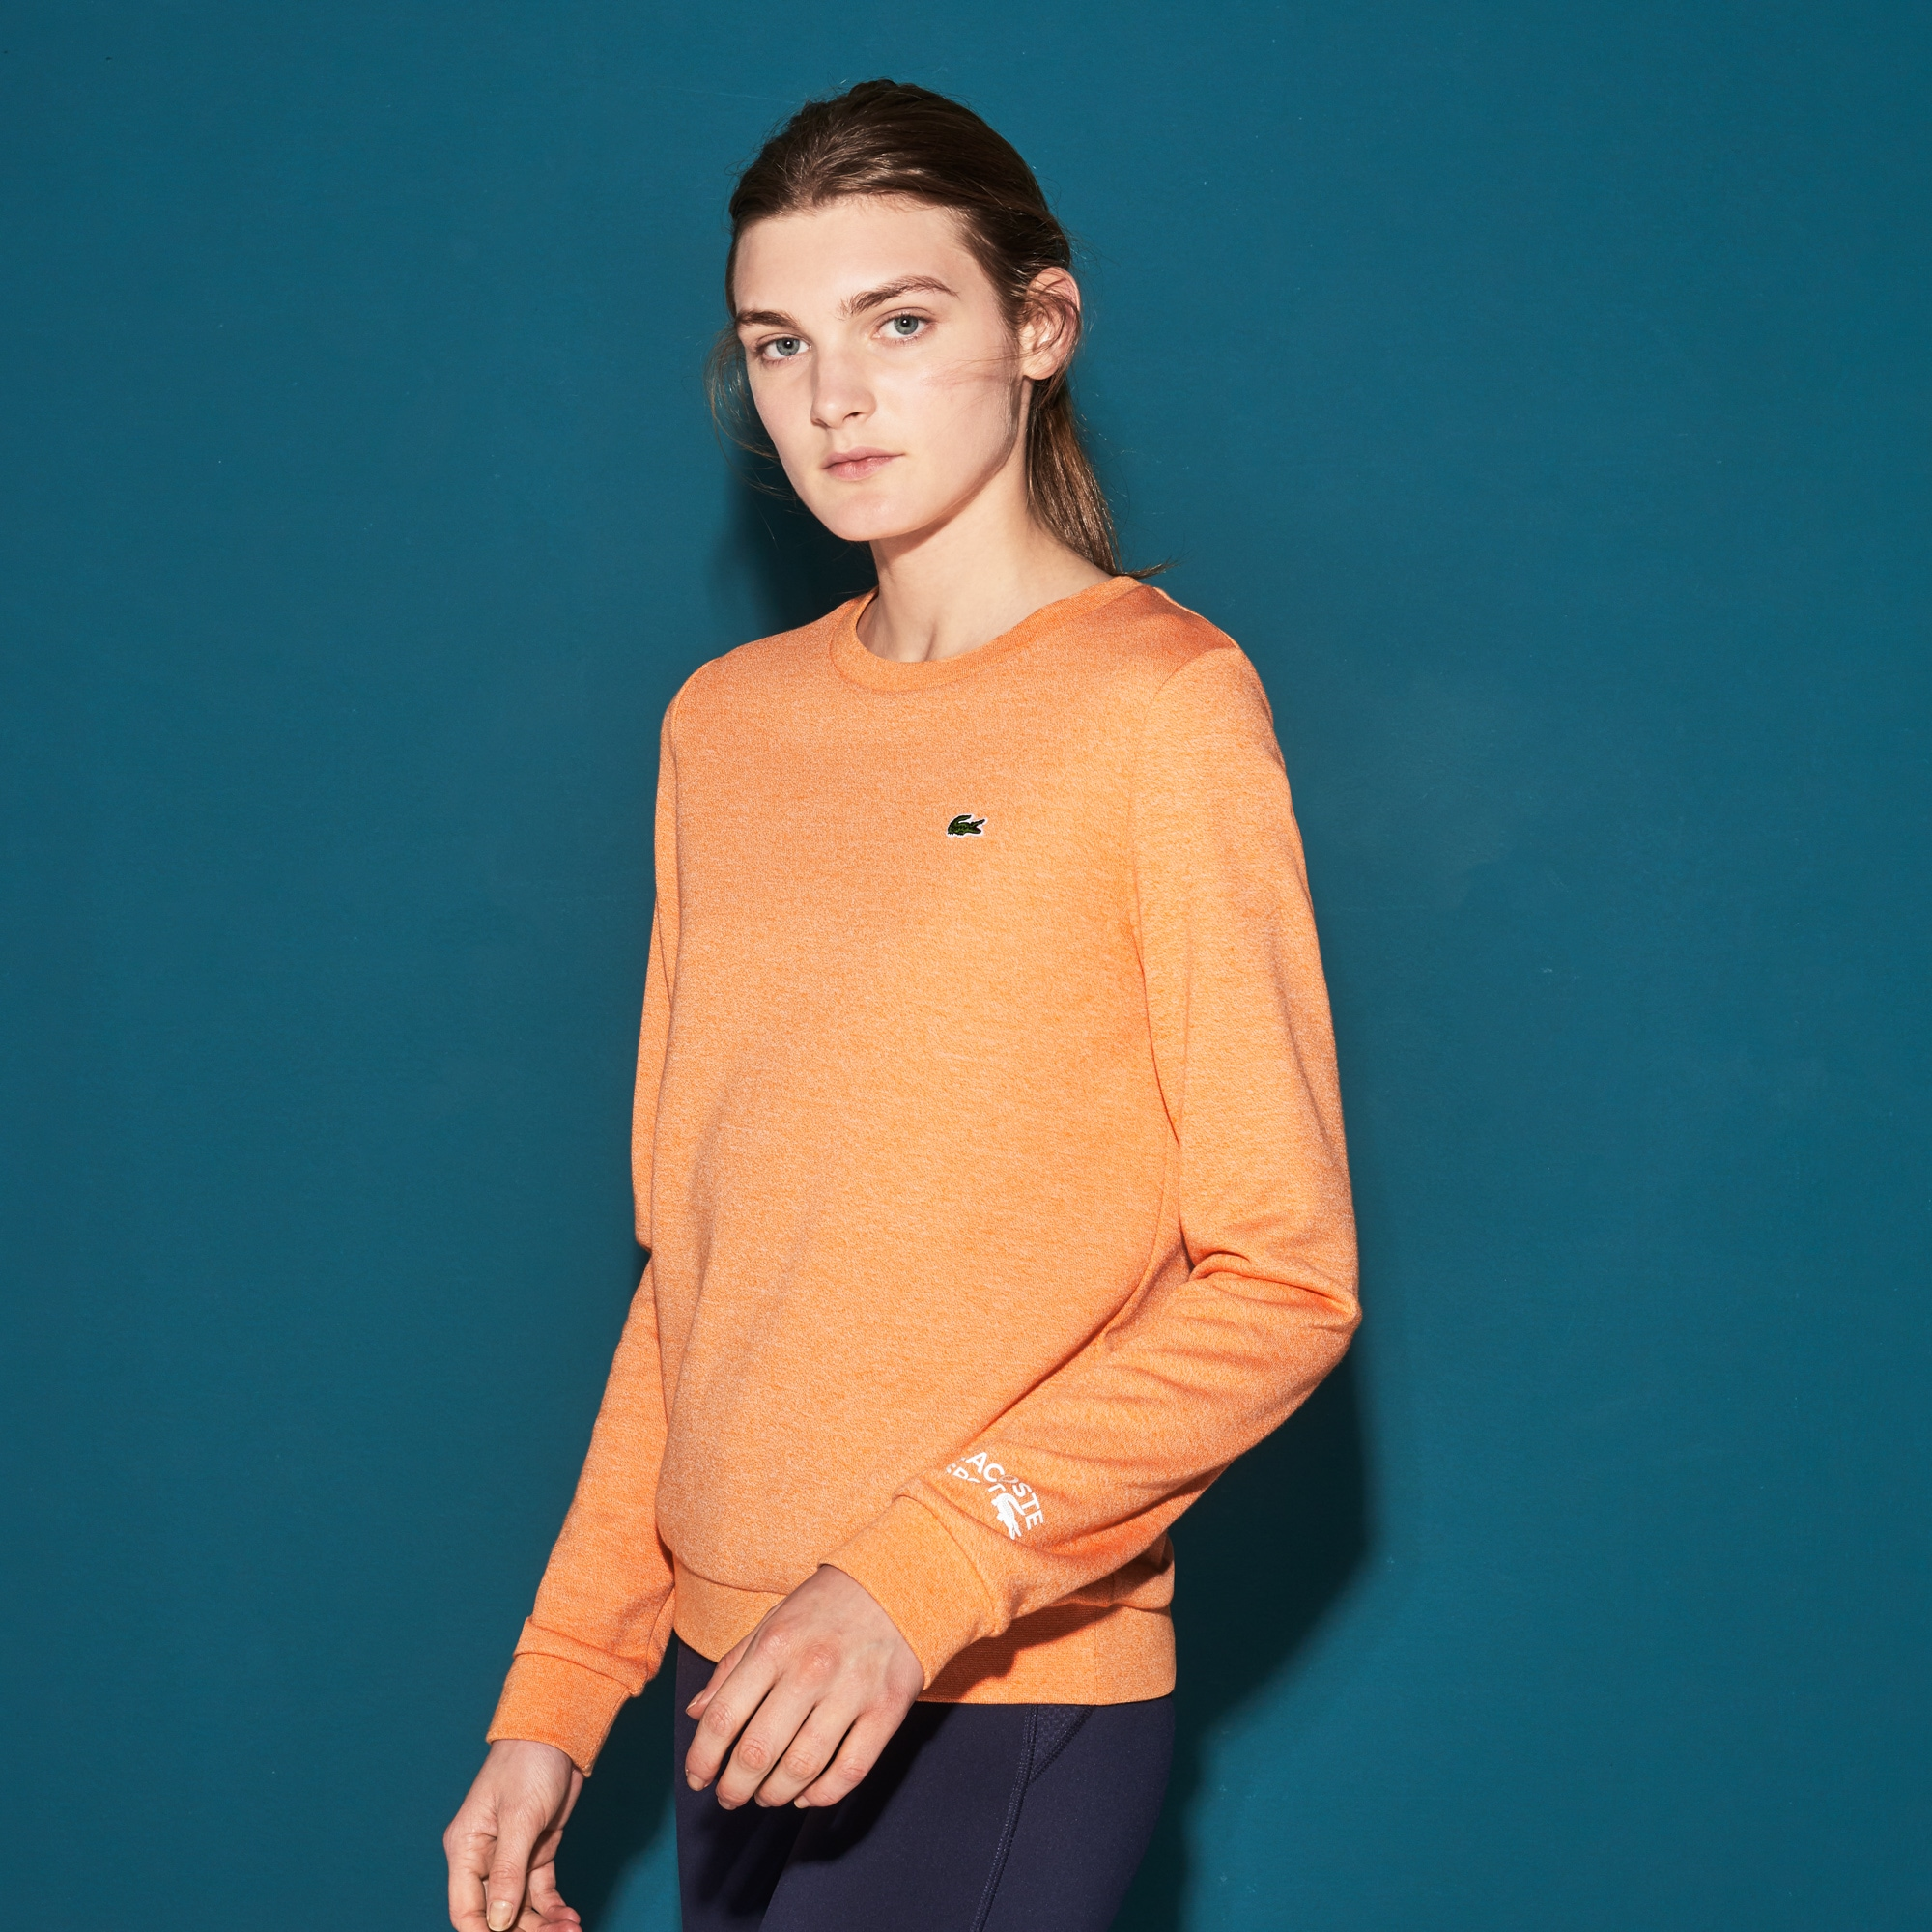 Women's SPORT Tennis Cotton Fleece Sweatshirt